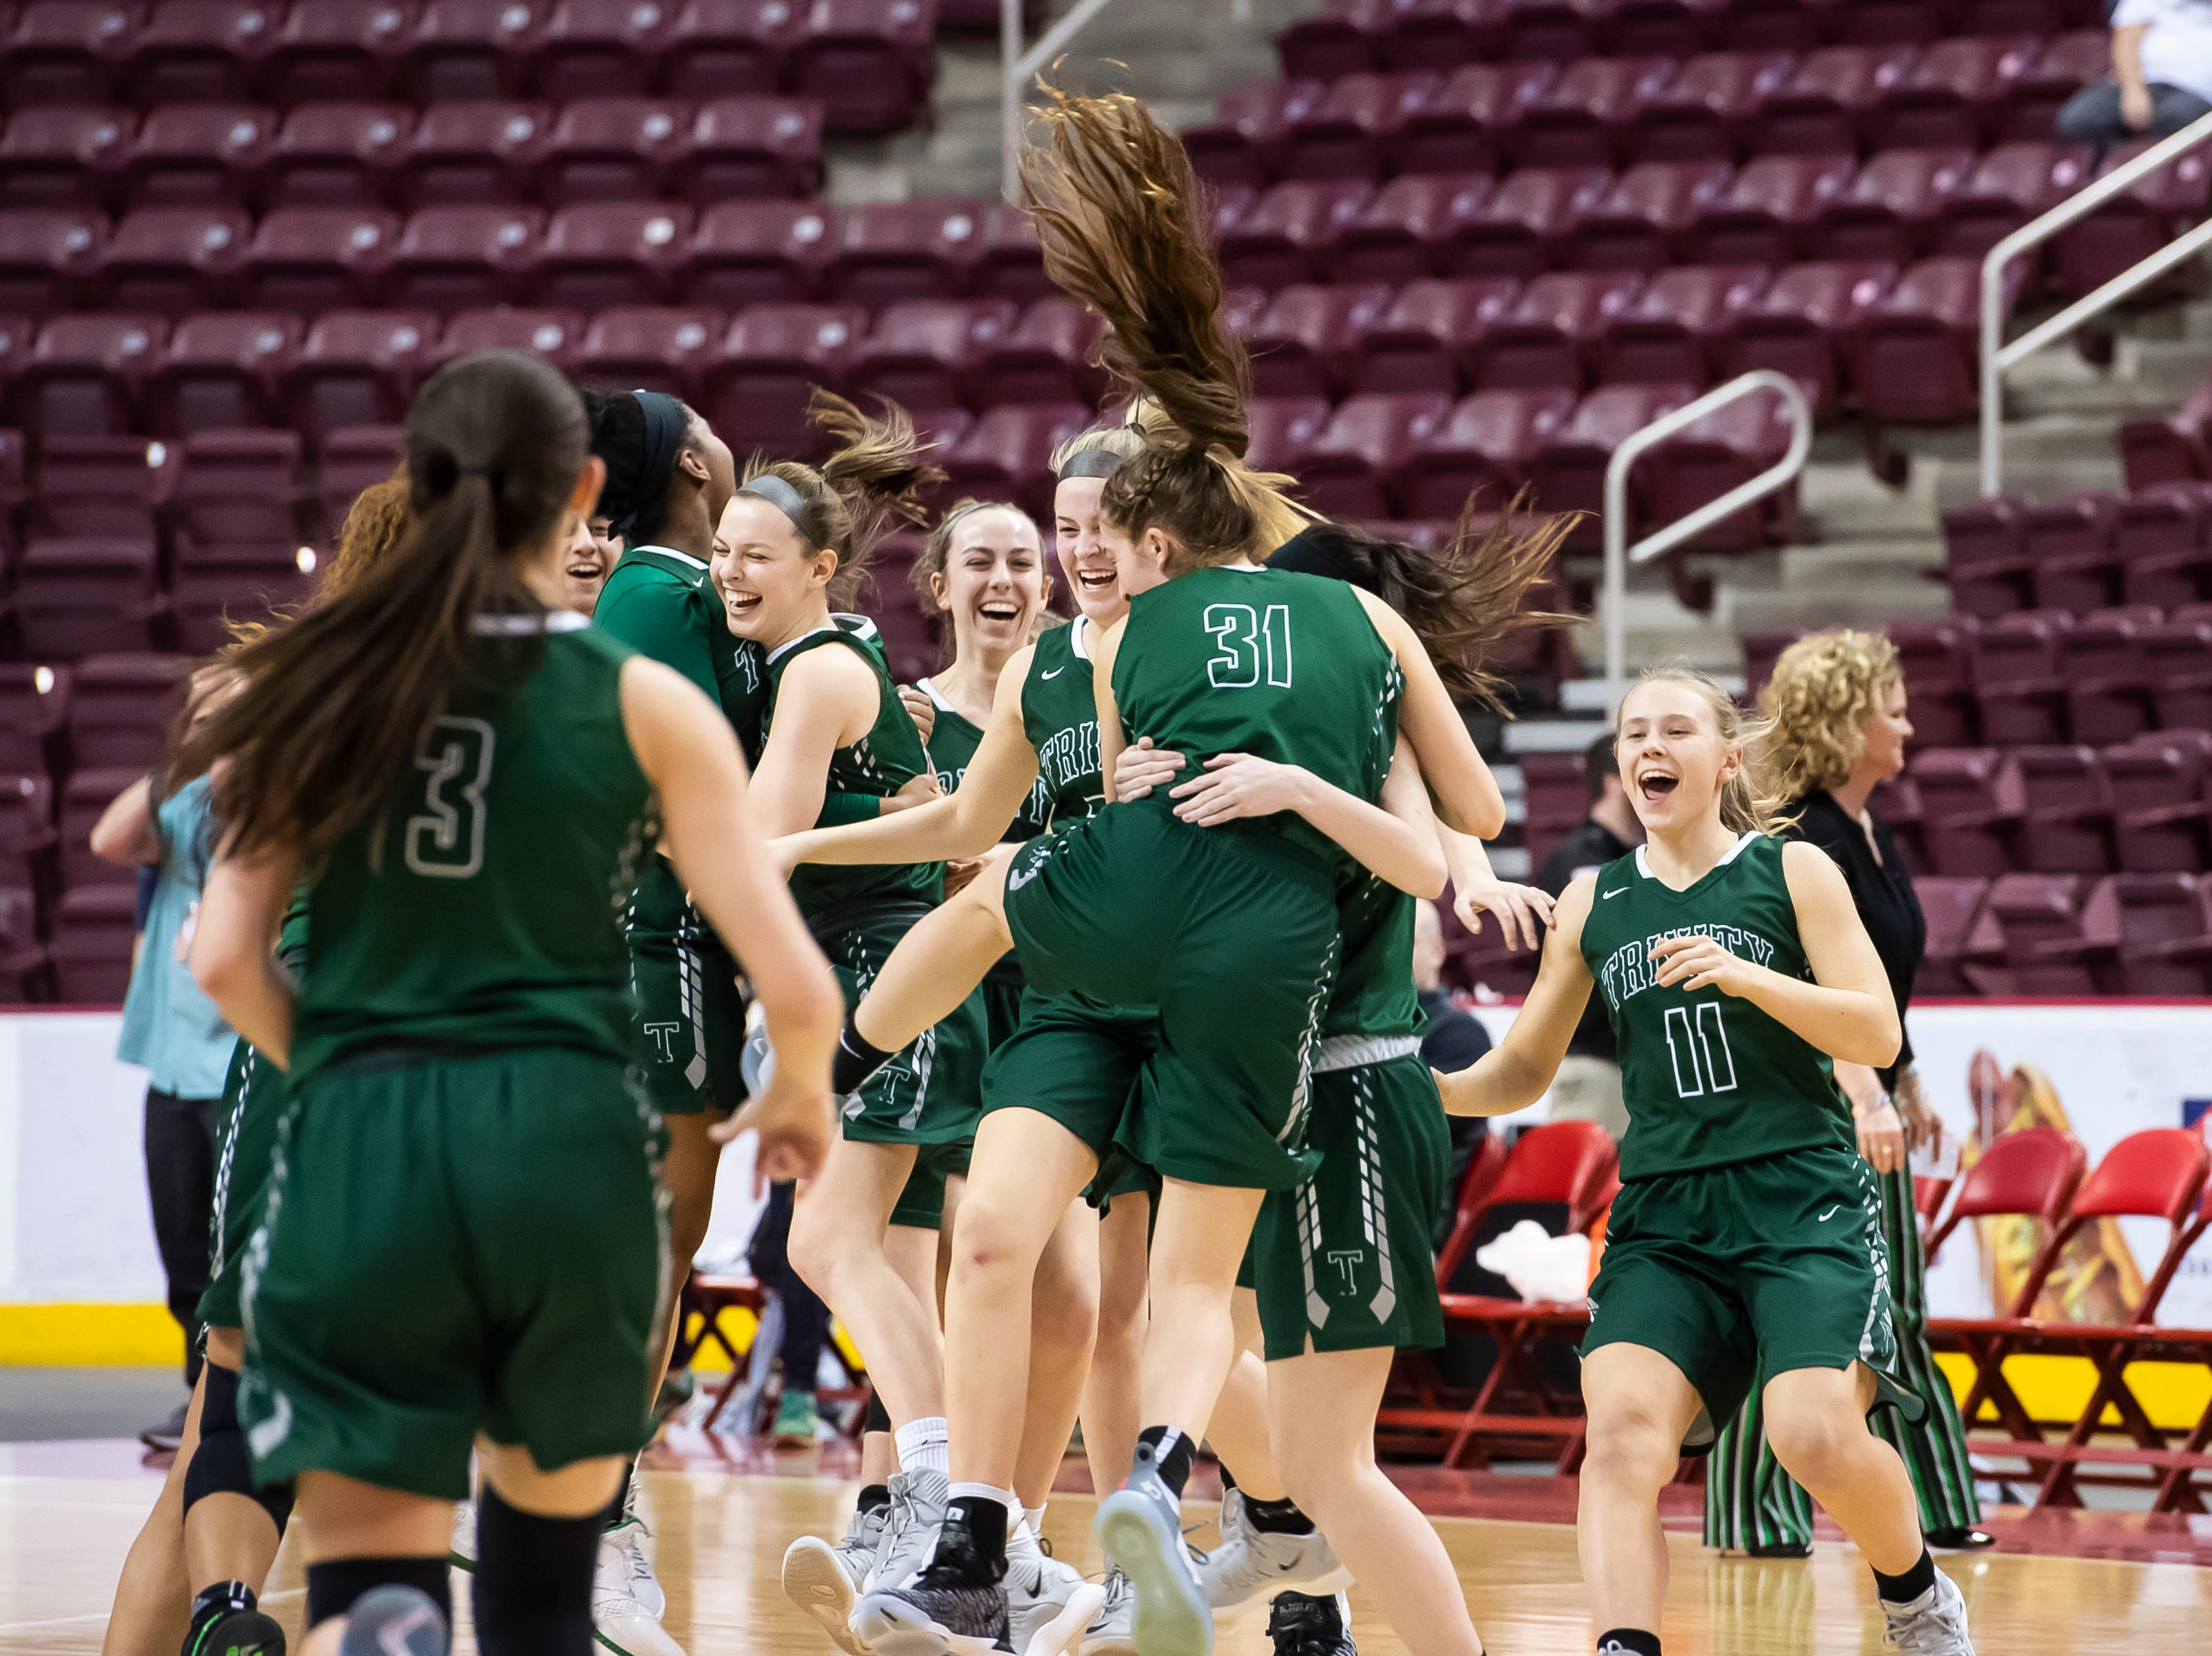 The Trinity Shamrocks celebrate after defeating Delone Catholic in the District 3 3A girls championship game against Trinity at the Giant Center in Hershey Wednesday, Feb. 27, 2019. The Squirettes fell 44-33.